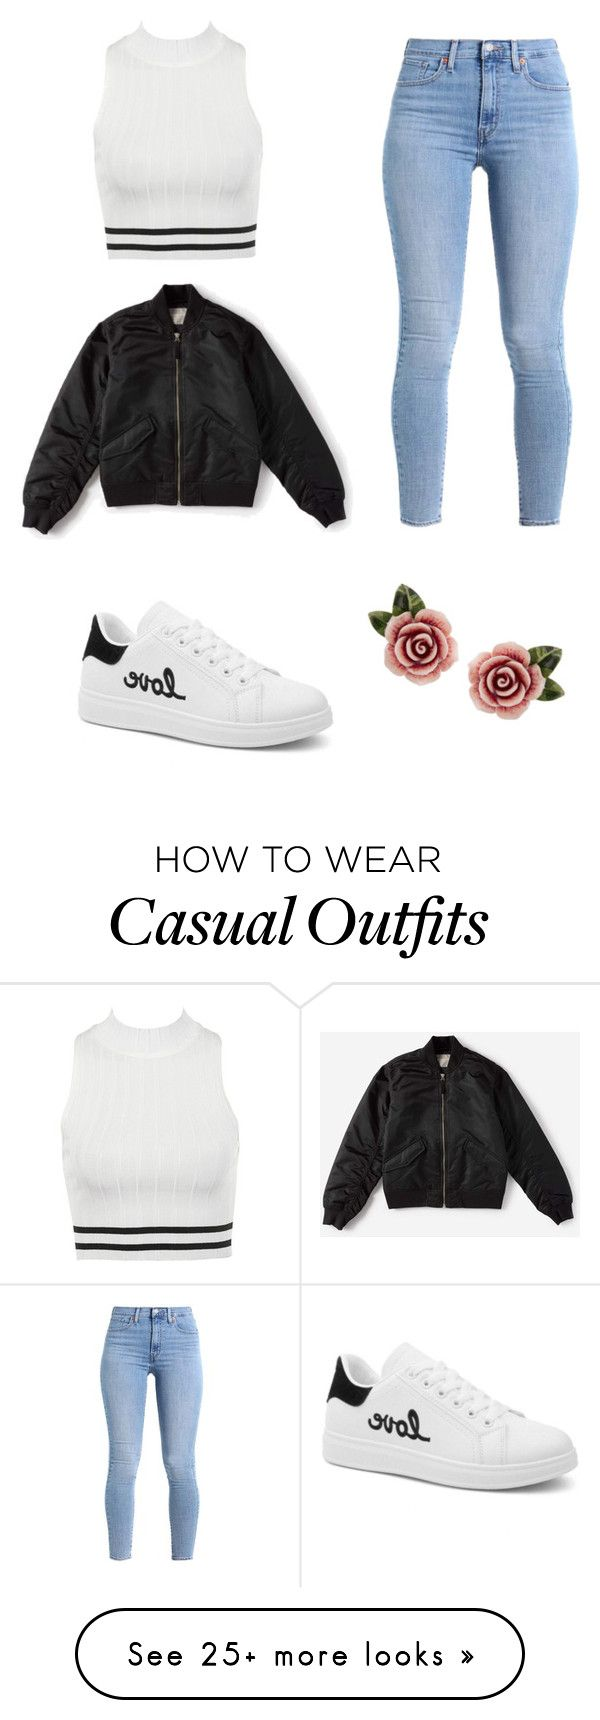 """Black and White Casual Outfit"" by sofiaisolda on Polyvore featuring Levi's, Everlane and Dolce&Gabbana"